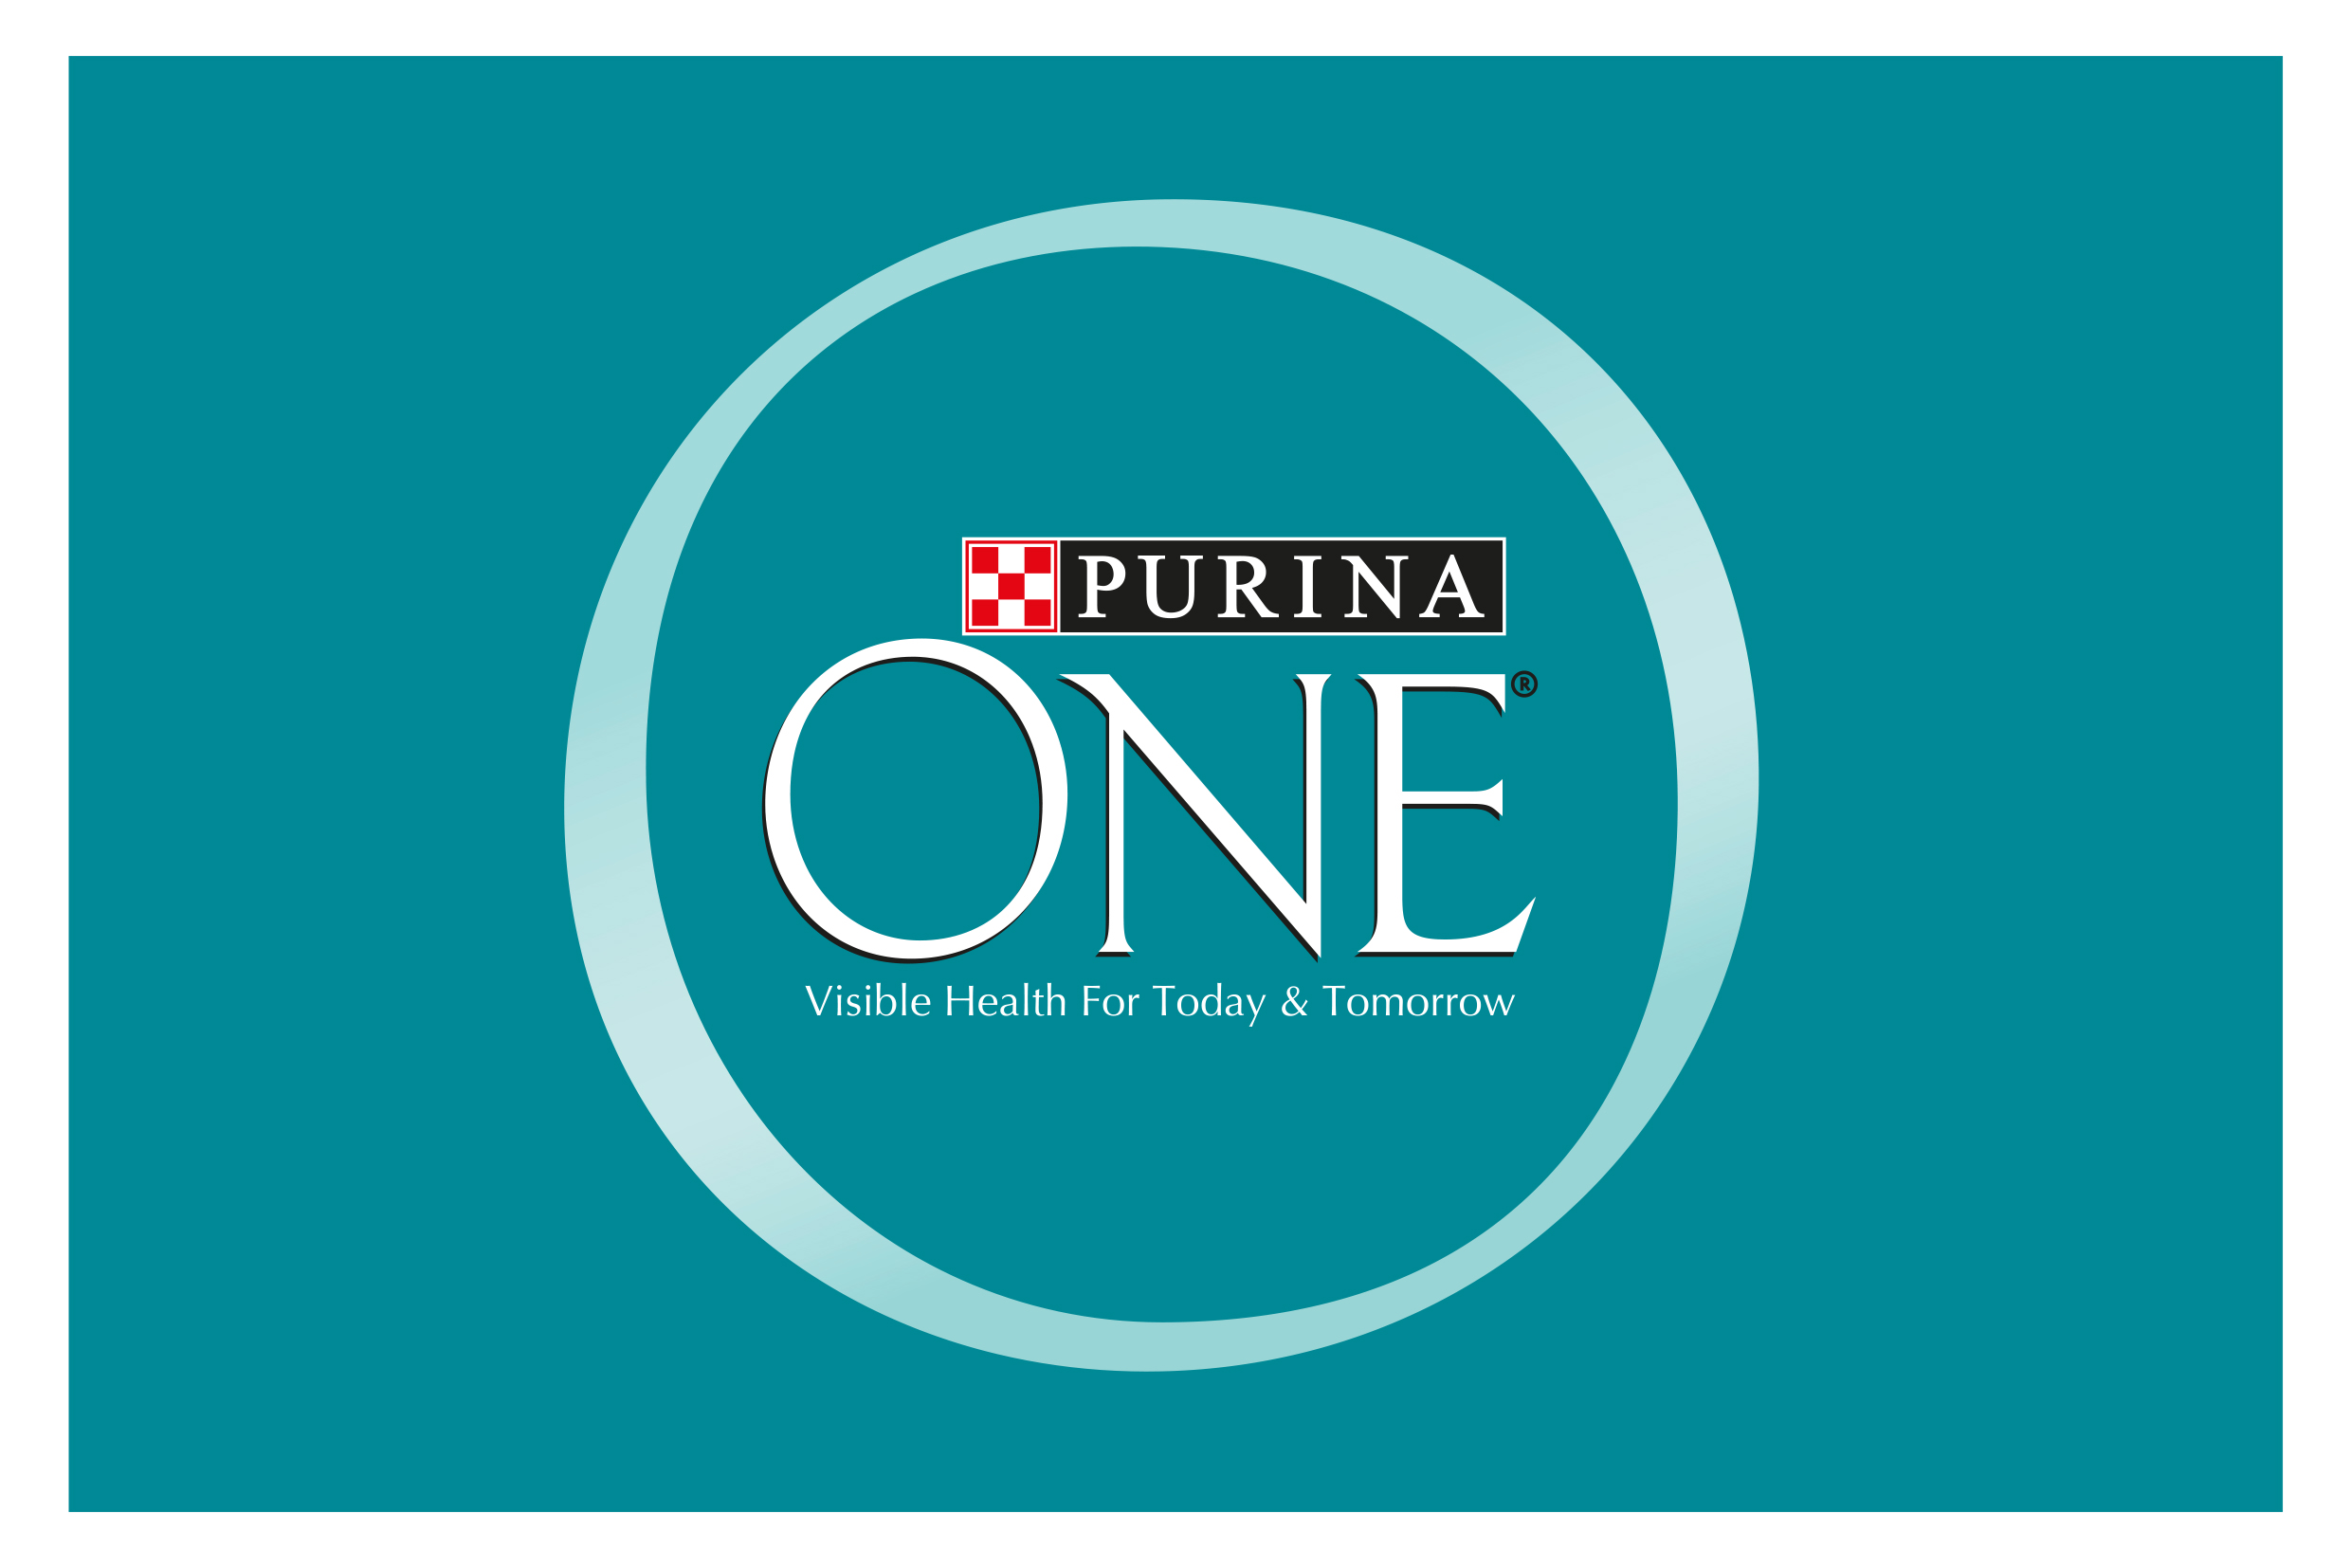 Purina_One Logo_150 dpi_RGB.jpg